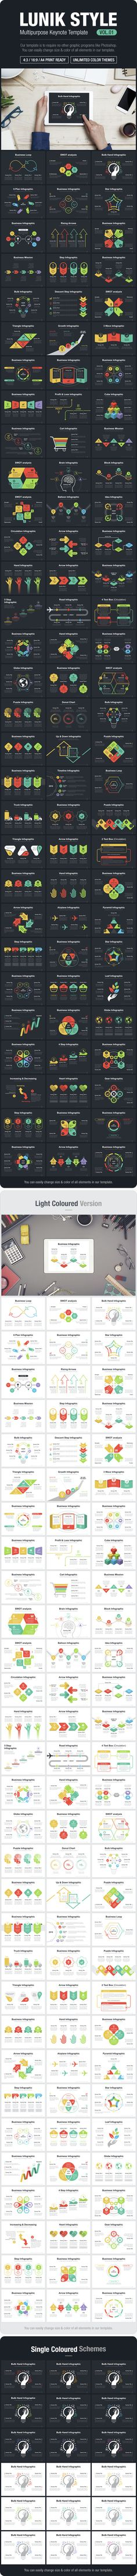 Lunik Style - Multipurpose Keynote Template. Download here: http://graphicriver.net/item/lunik-style-multipurpose-keynote-template/15295233?ref=ksioks